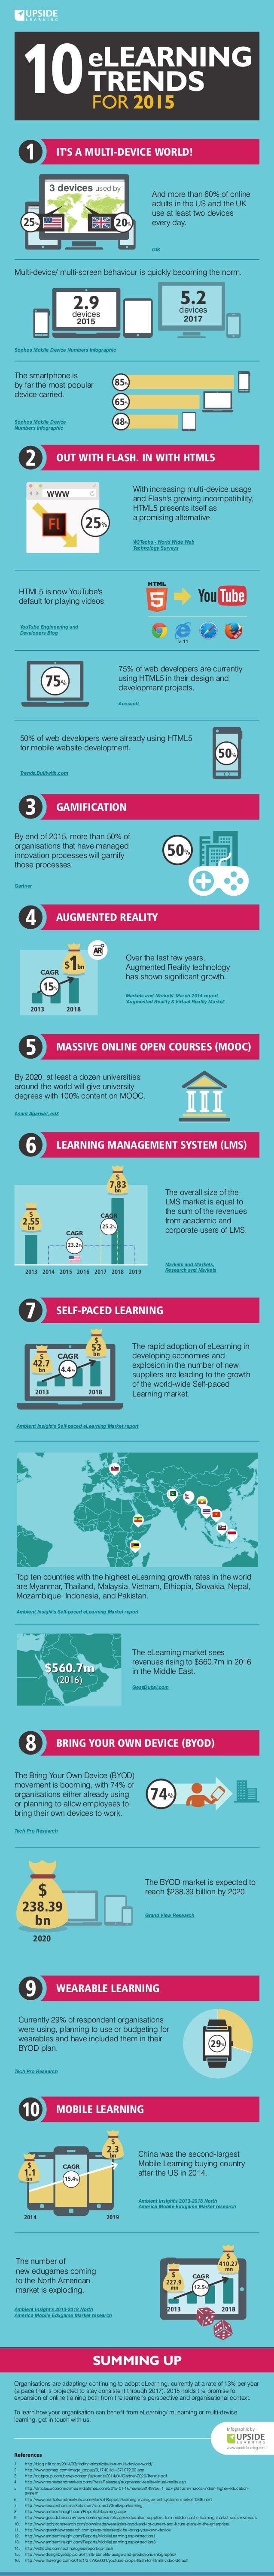 10eLEARNING TRENDS FOR 2015 IT'S A MULTI-DEVICE WORLD! SUMMING UP Organisations are adapting/ continuing to adopt eLearnin...